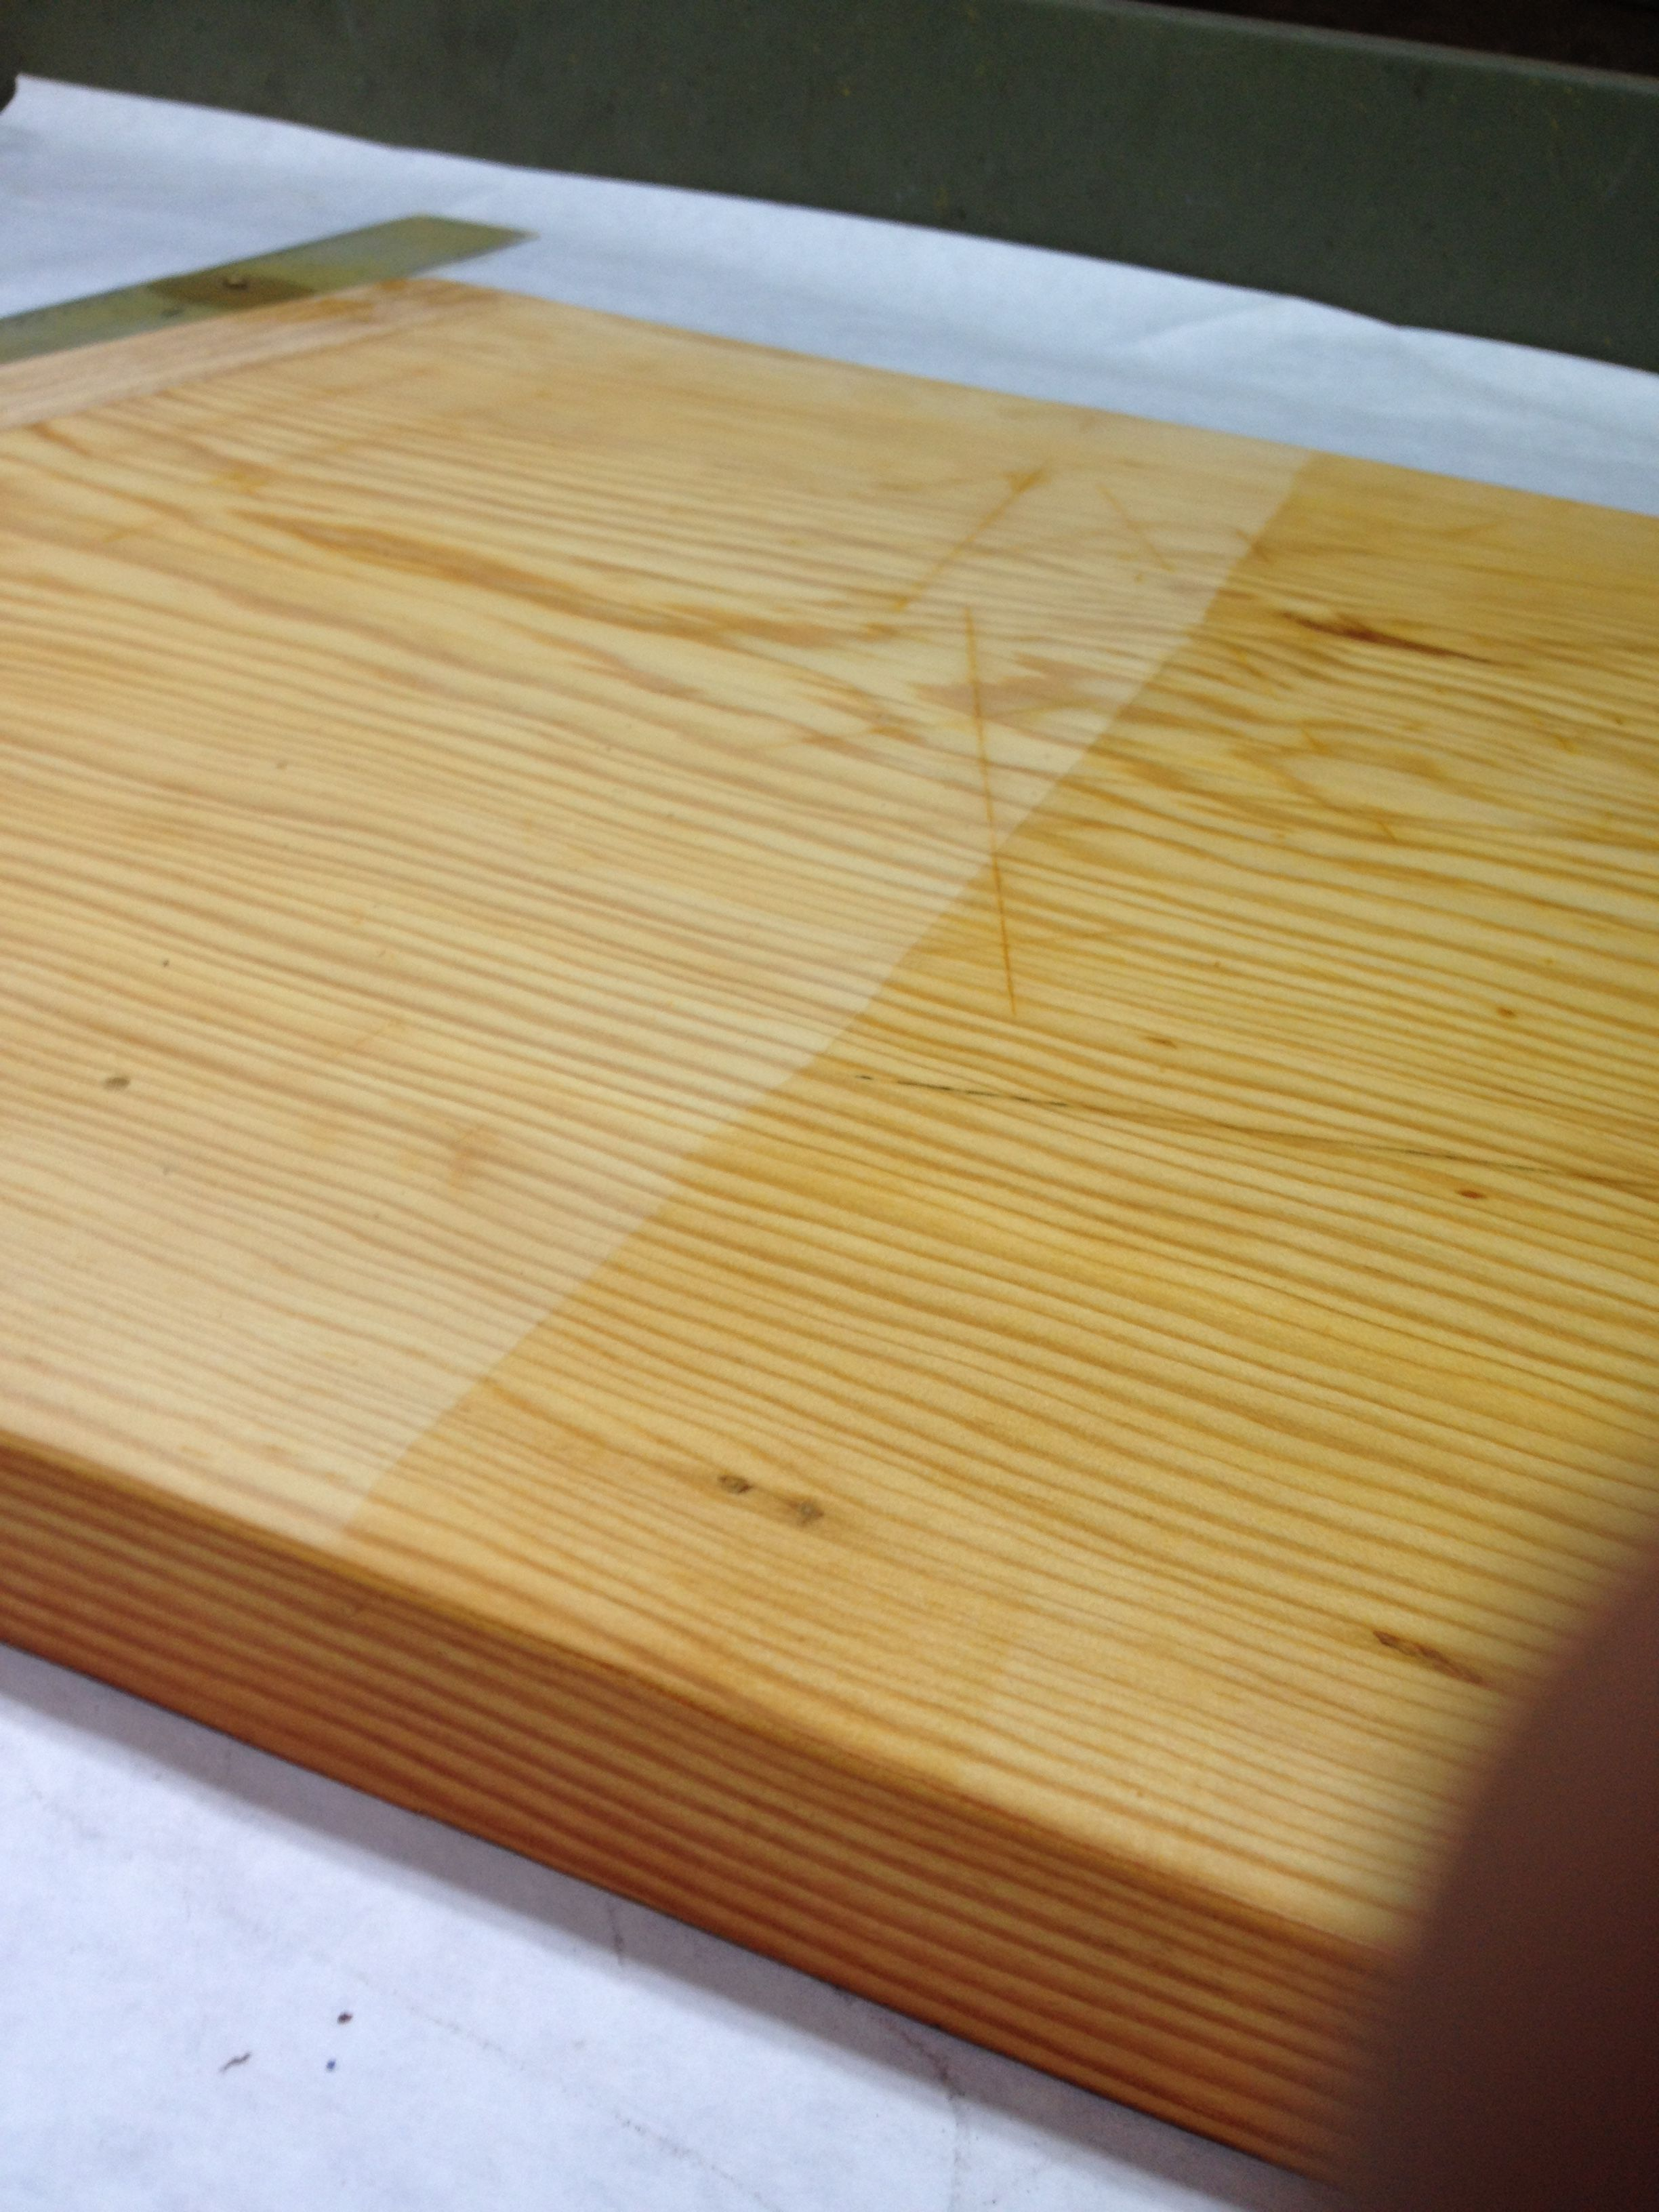 Sanding A Wooden Cutting Board